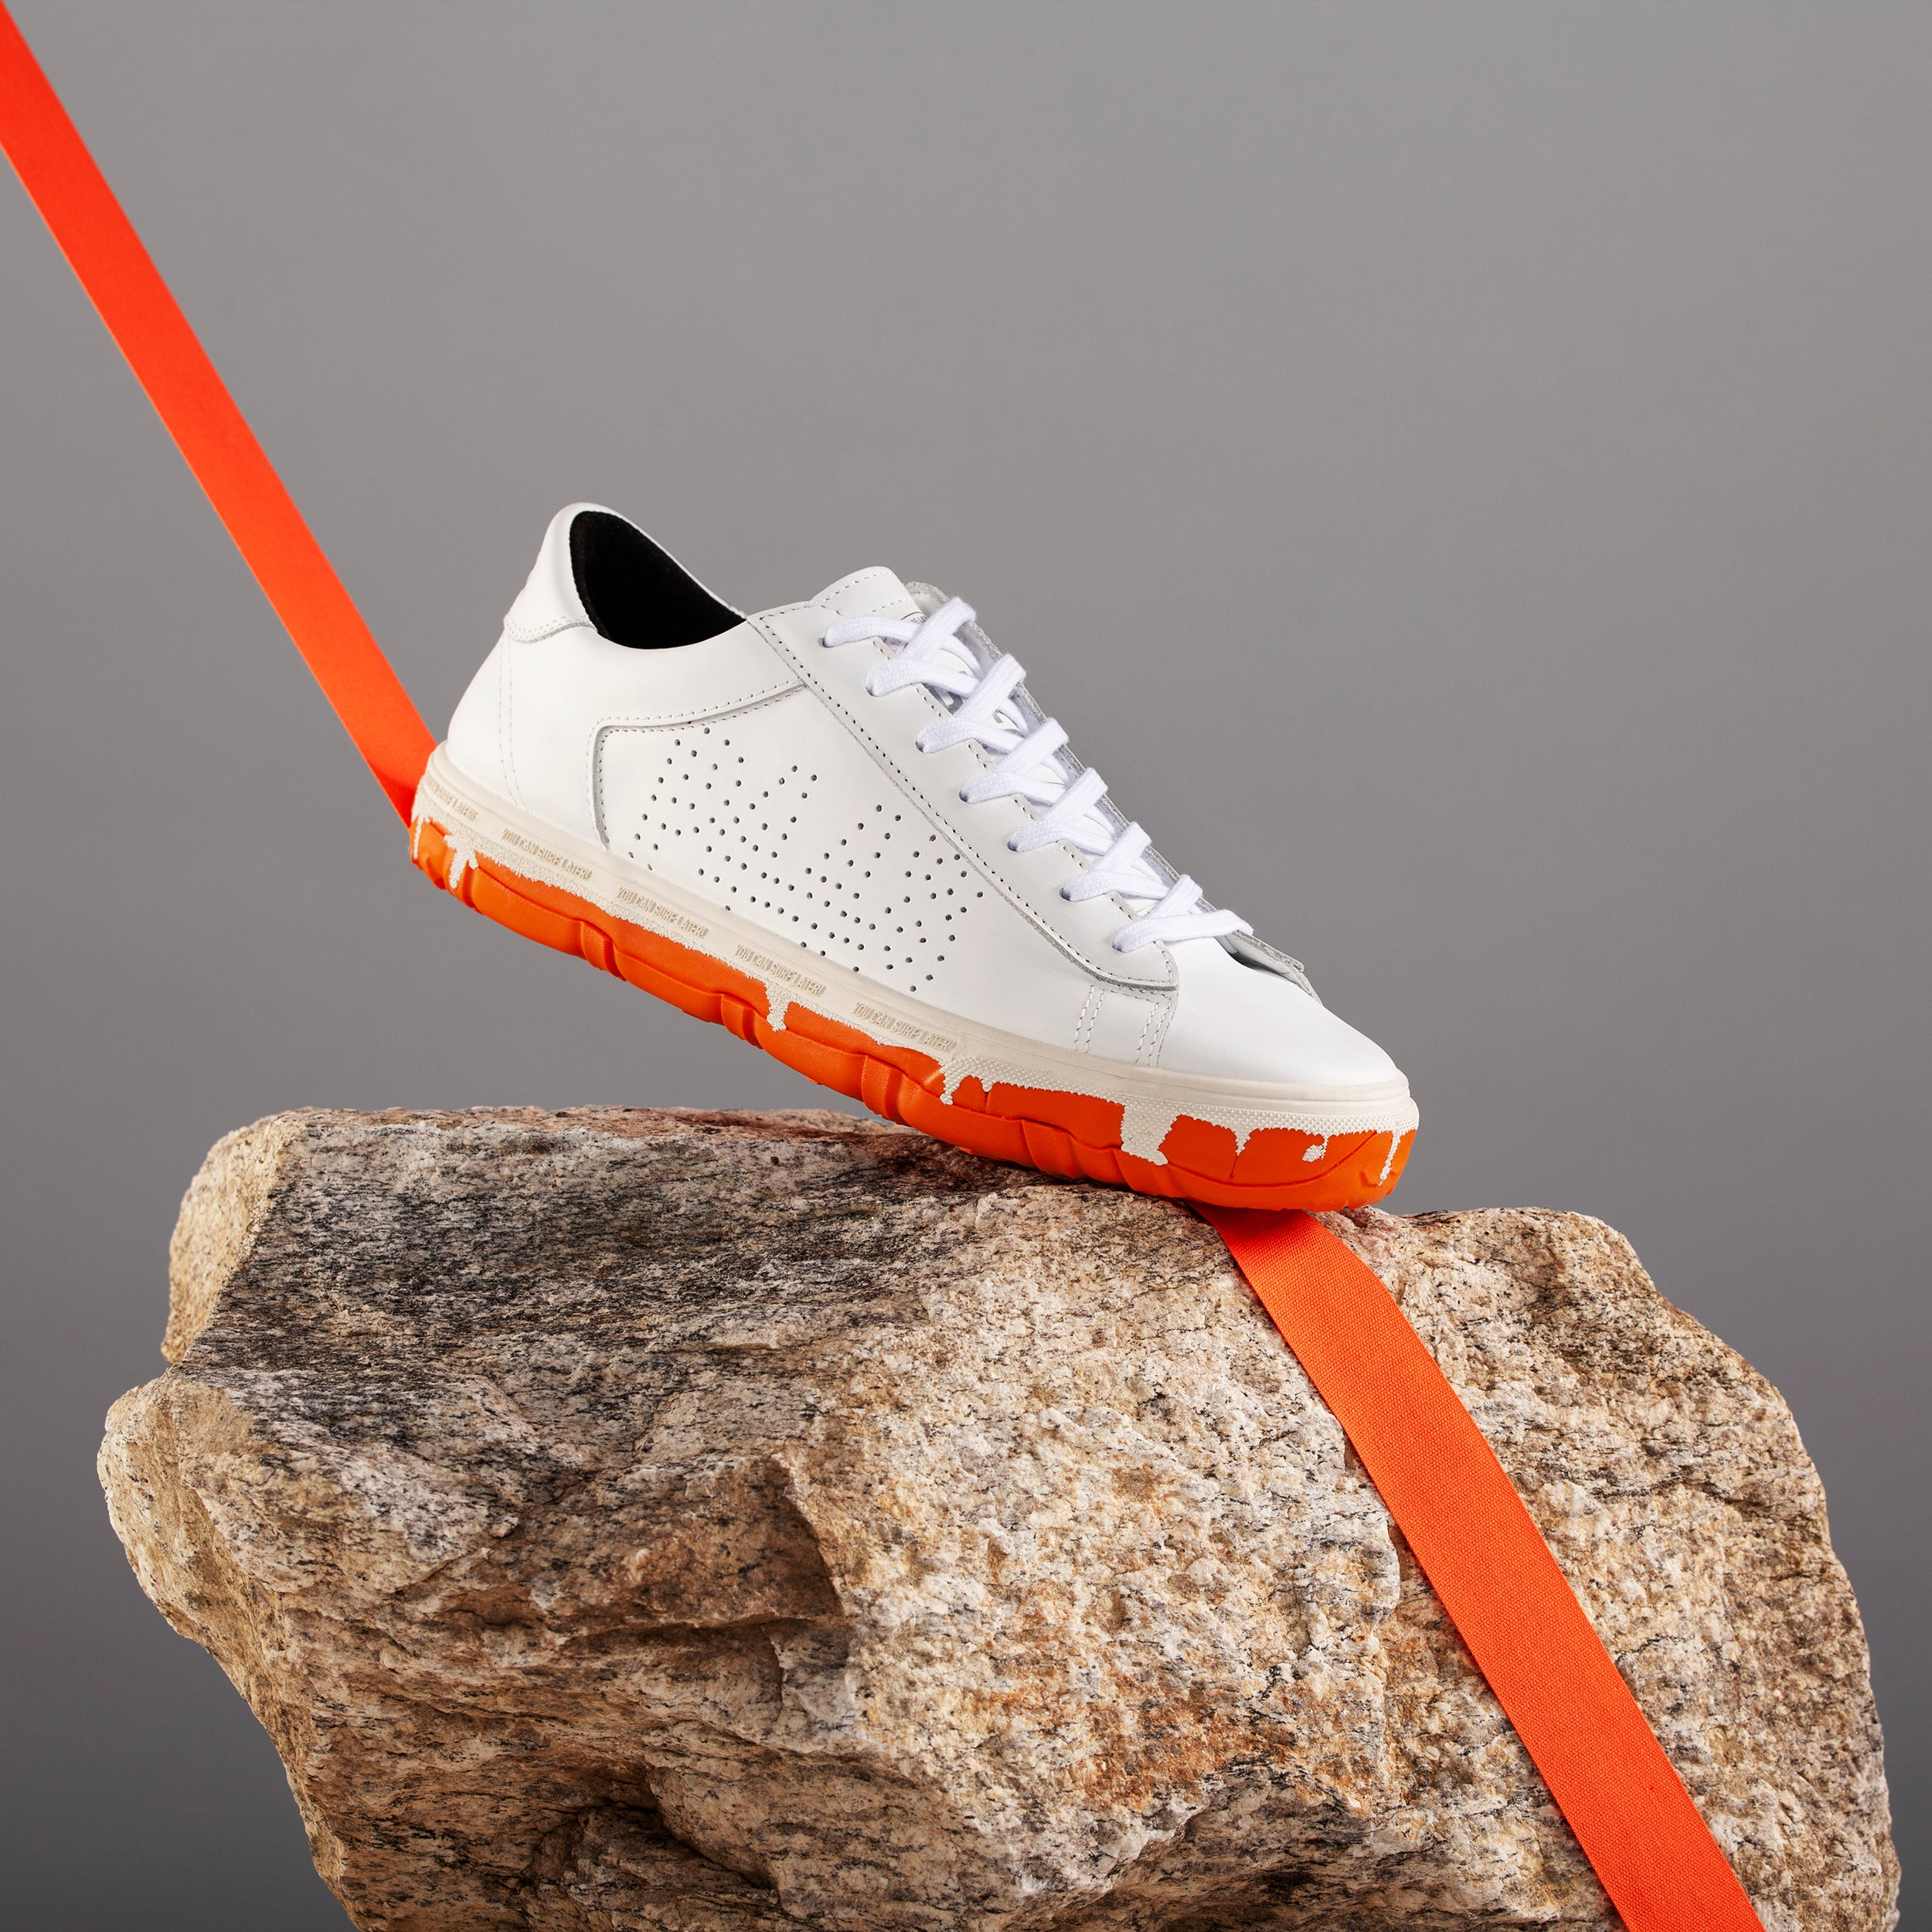 Y.C.S.L. Vibram Low-Top Sneaker in White/Orange - Styled